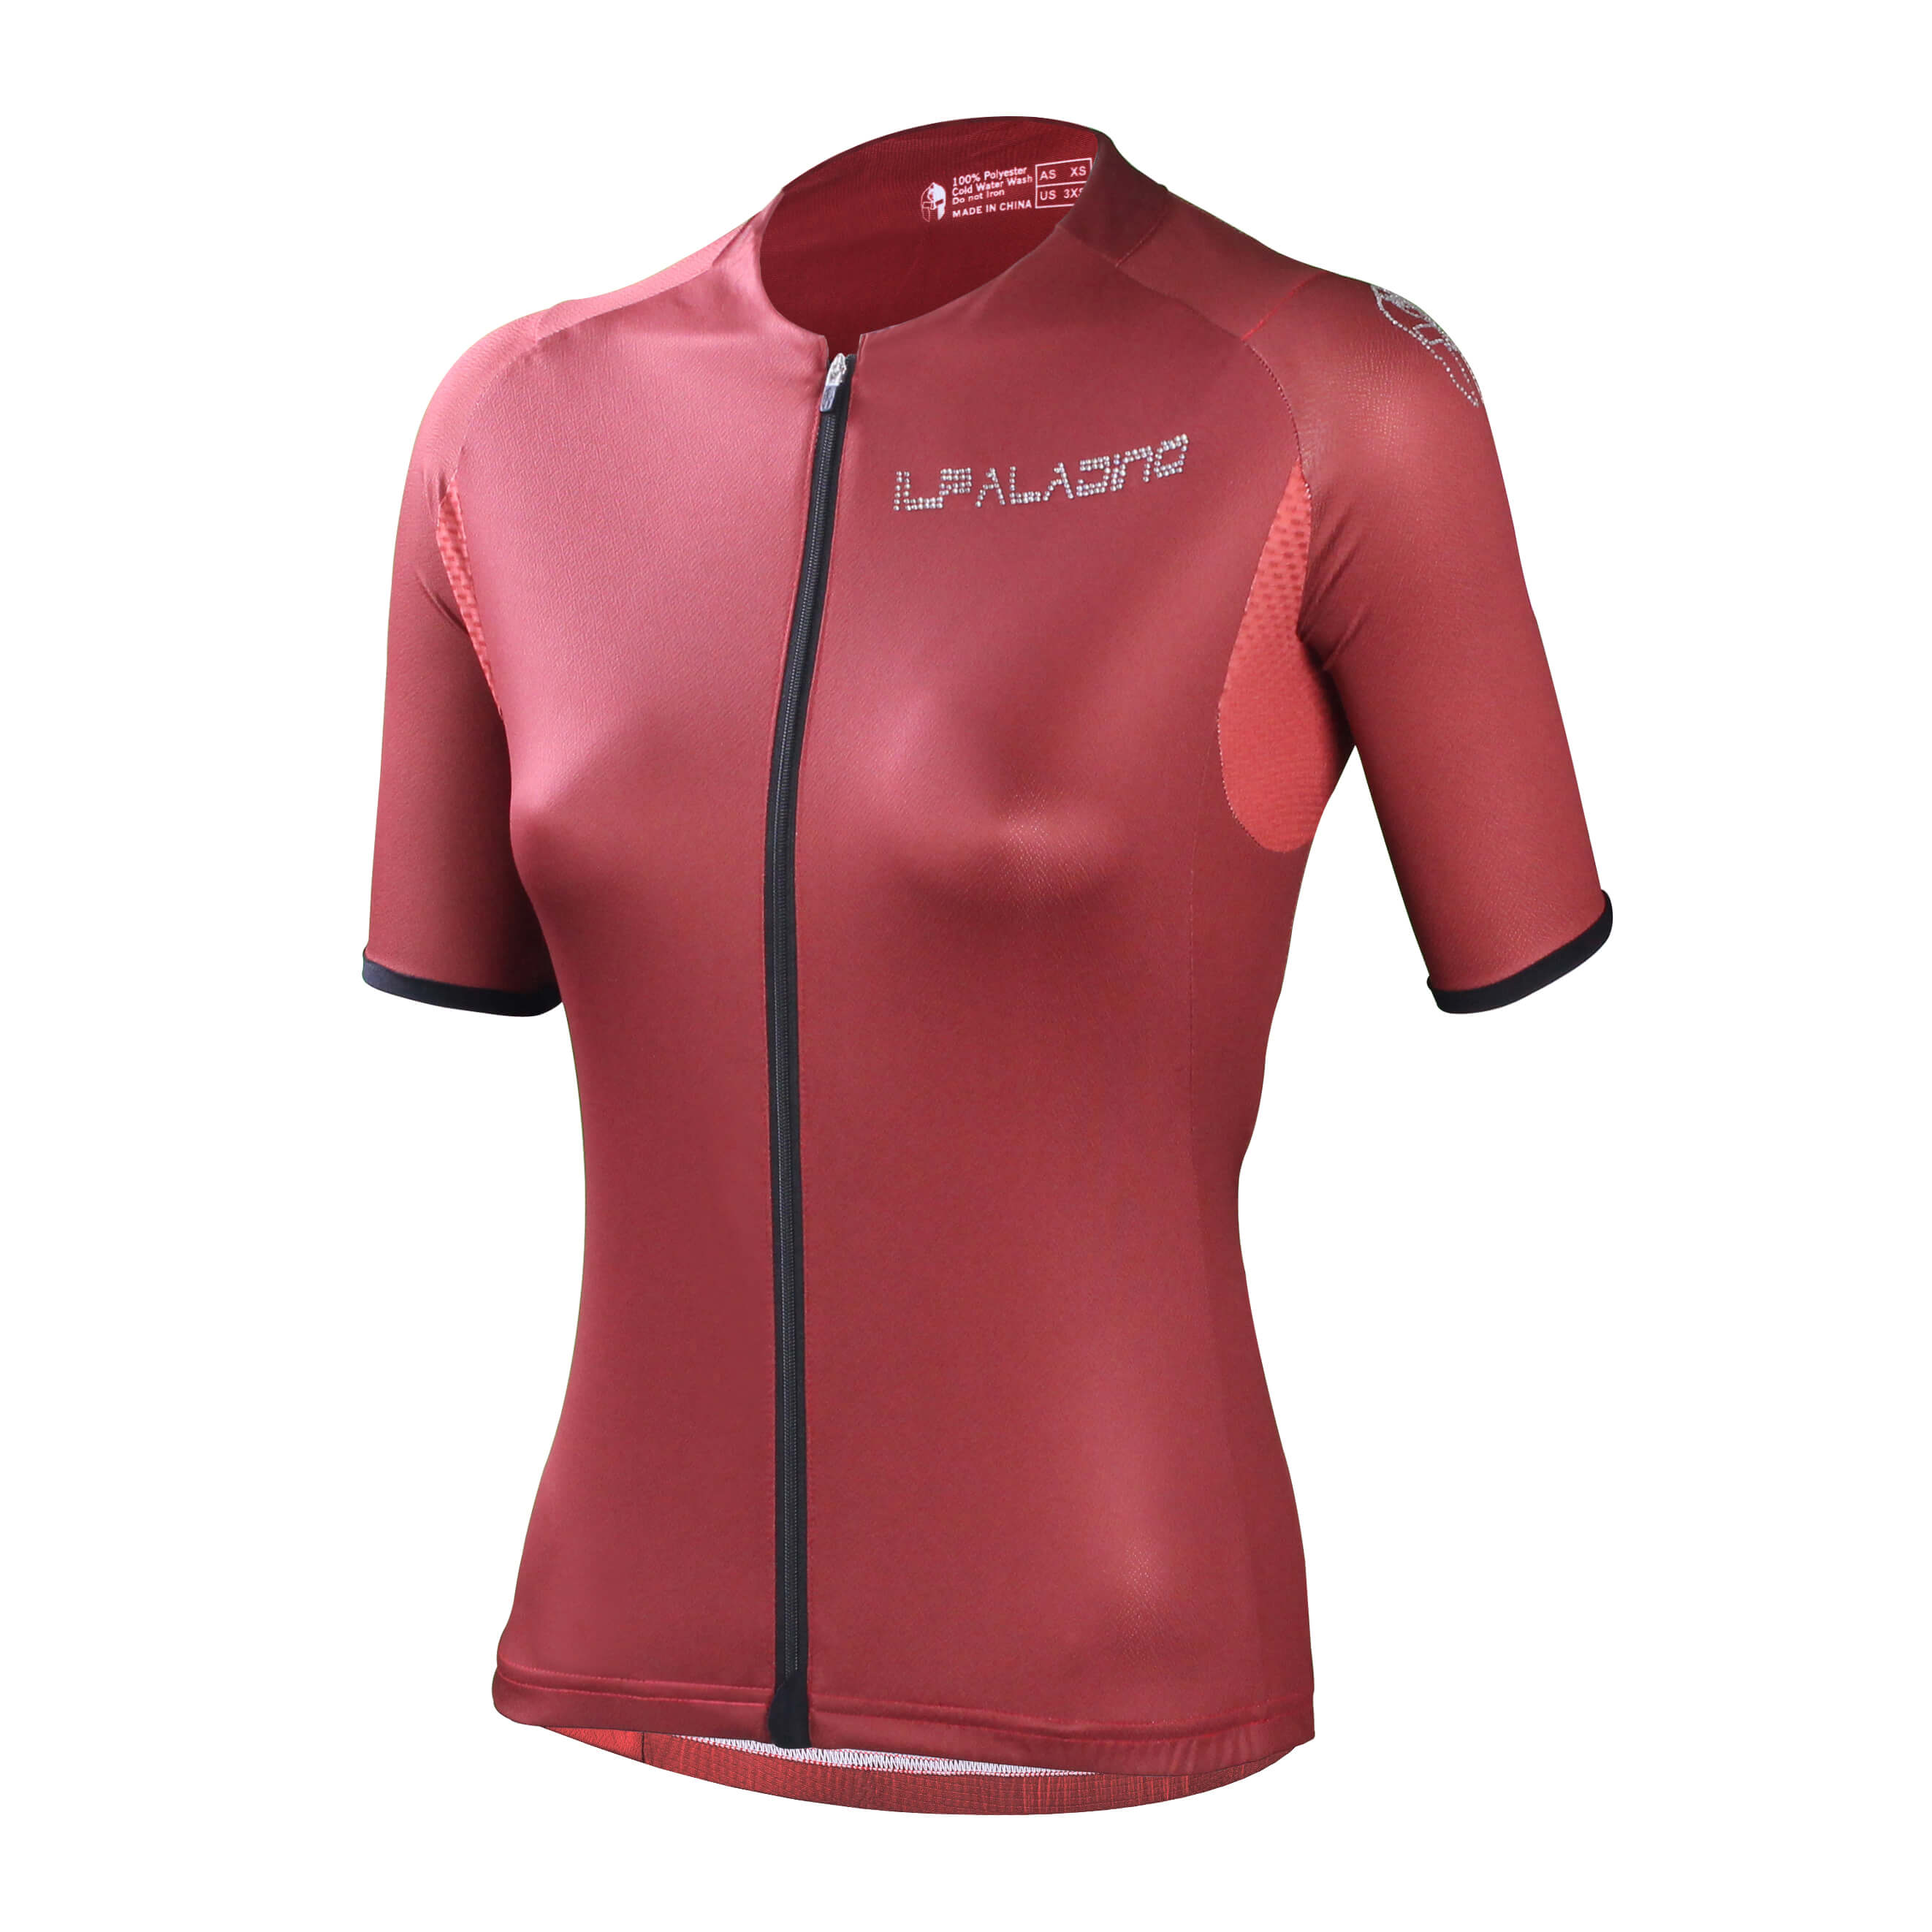 Red Cycling Shirt 3xl Zipper Womens Bike Jersey